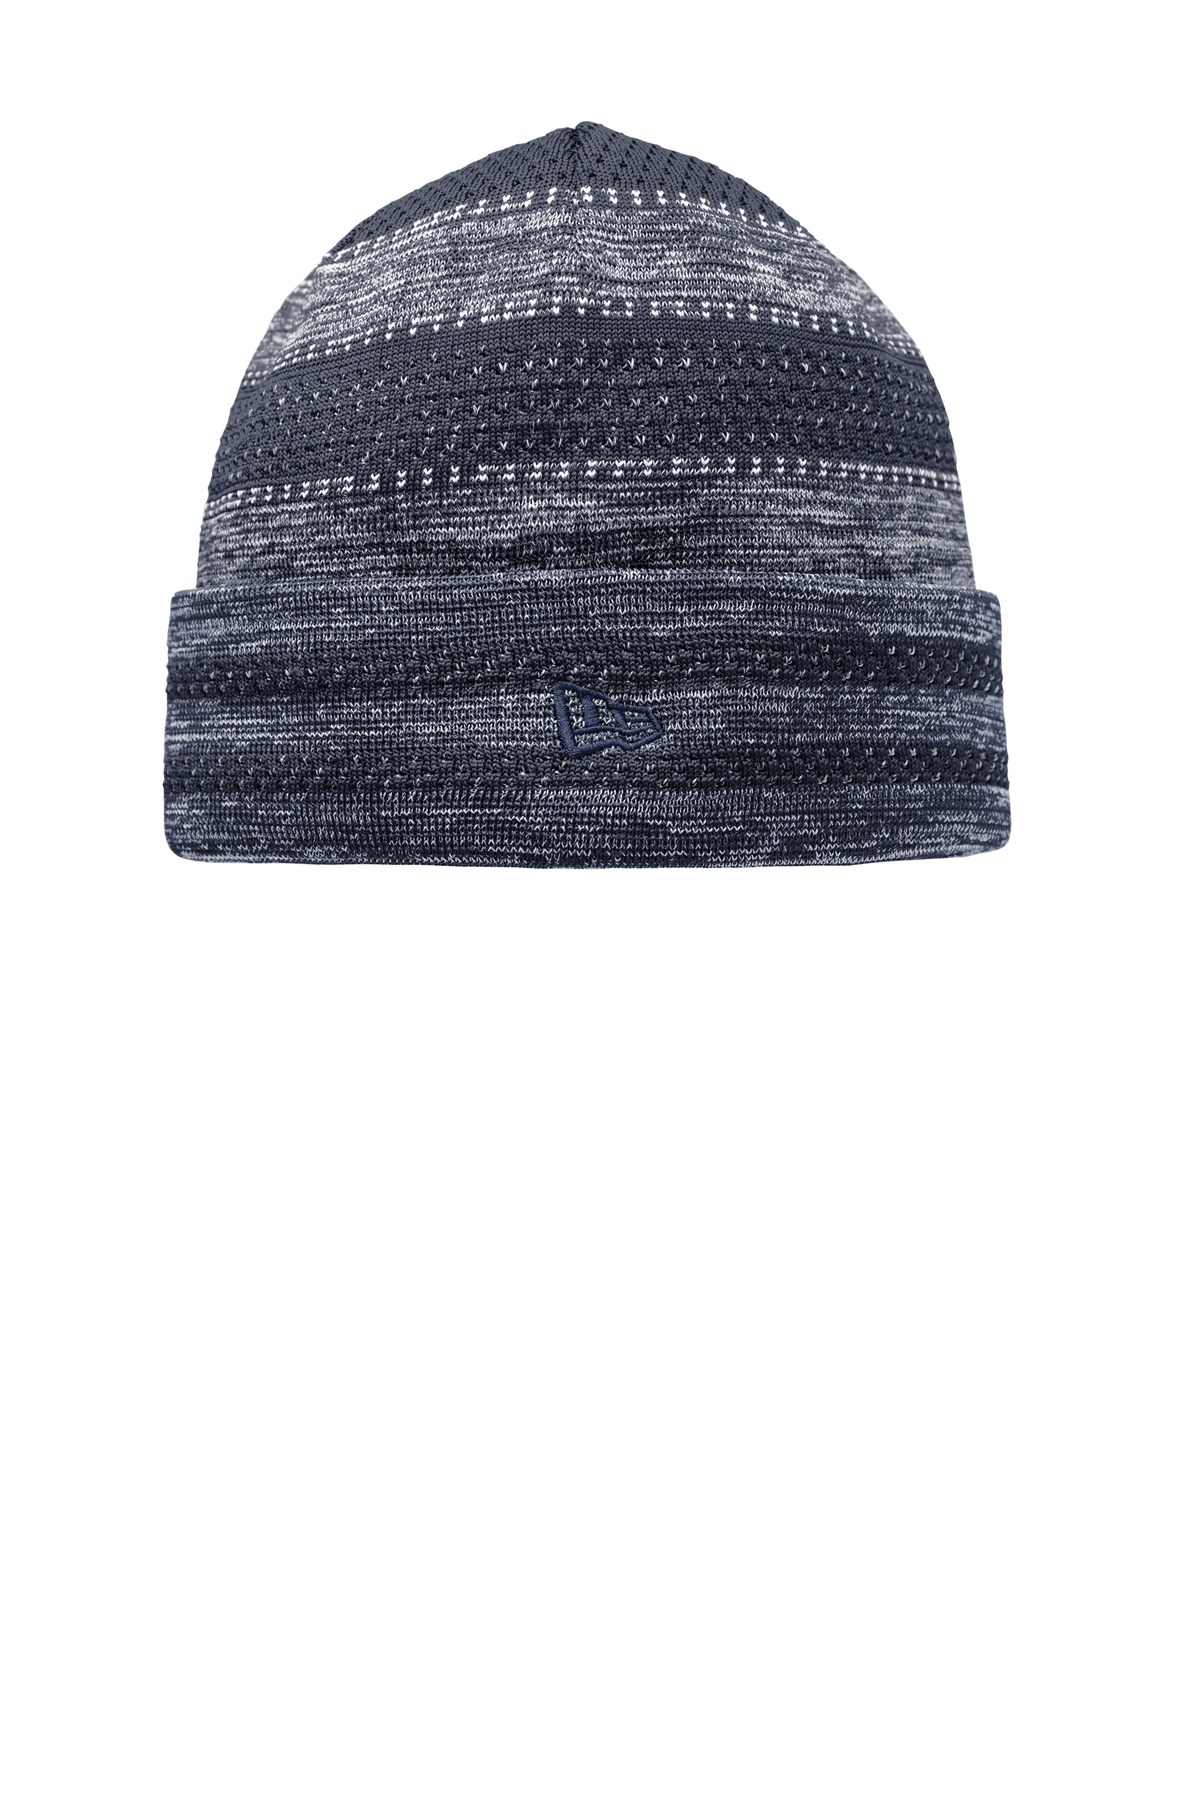 New Era On-Field Knit Beanie NE906